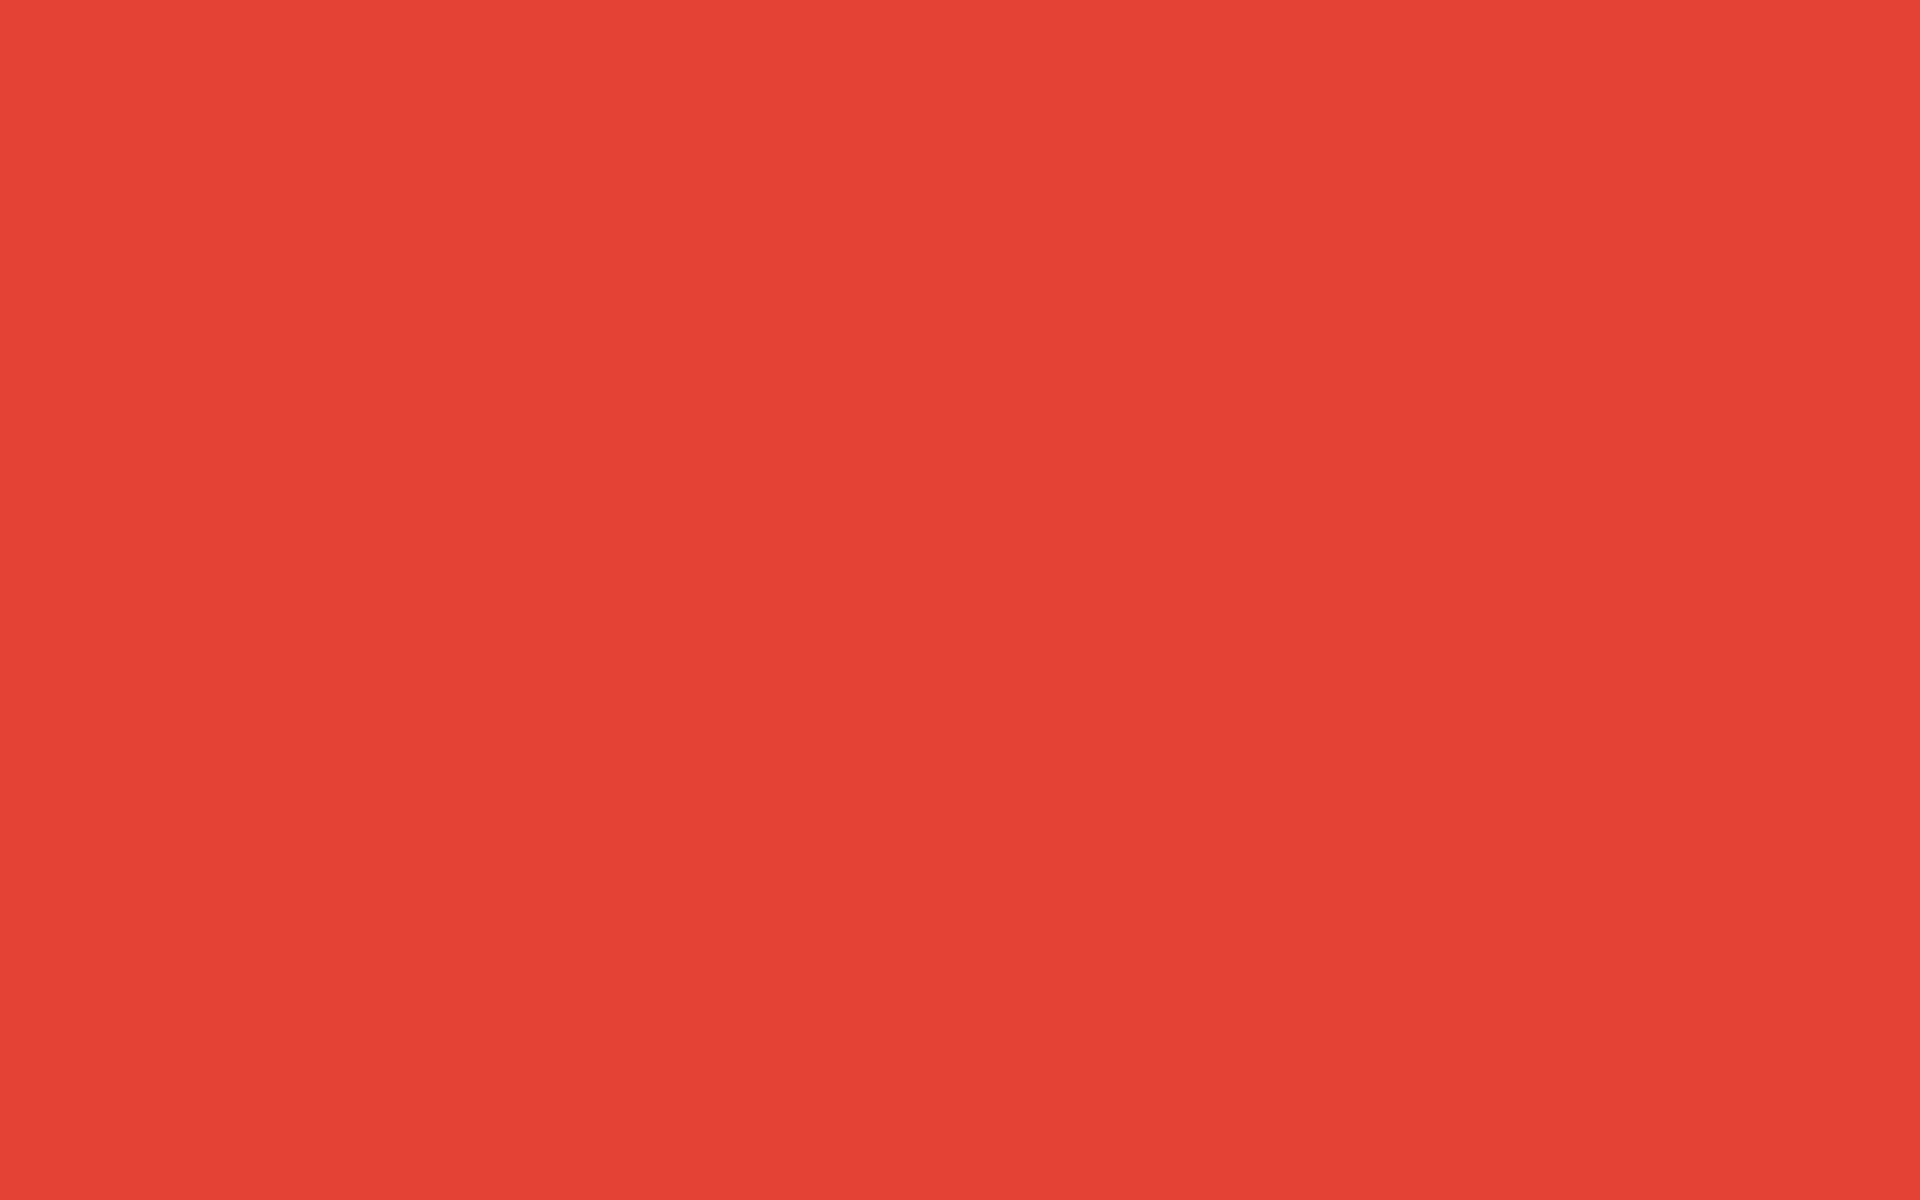 1920x1200 Cinnabar Solid Color Background